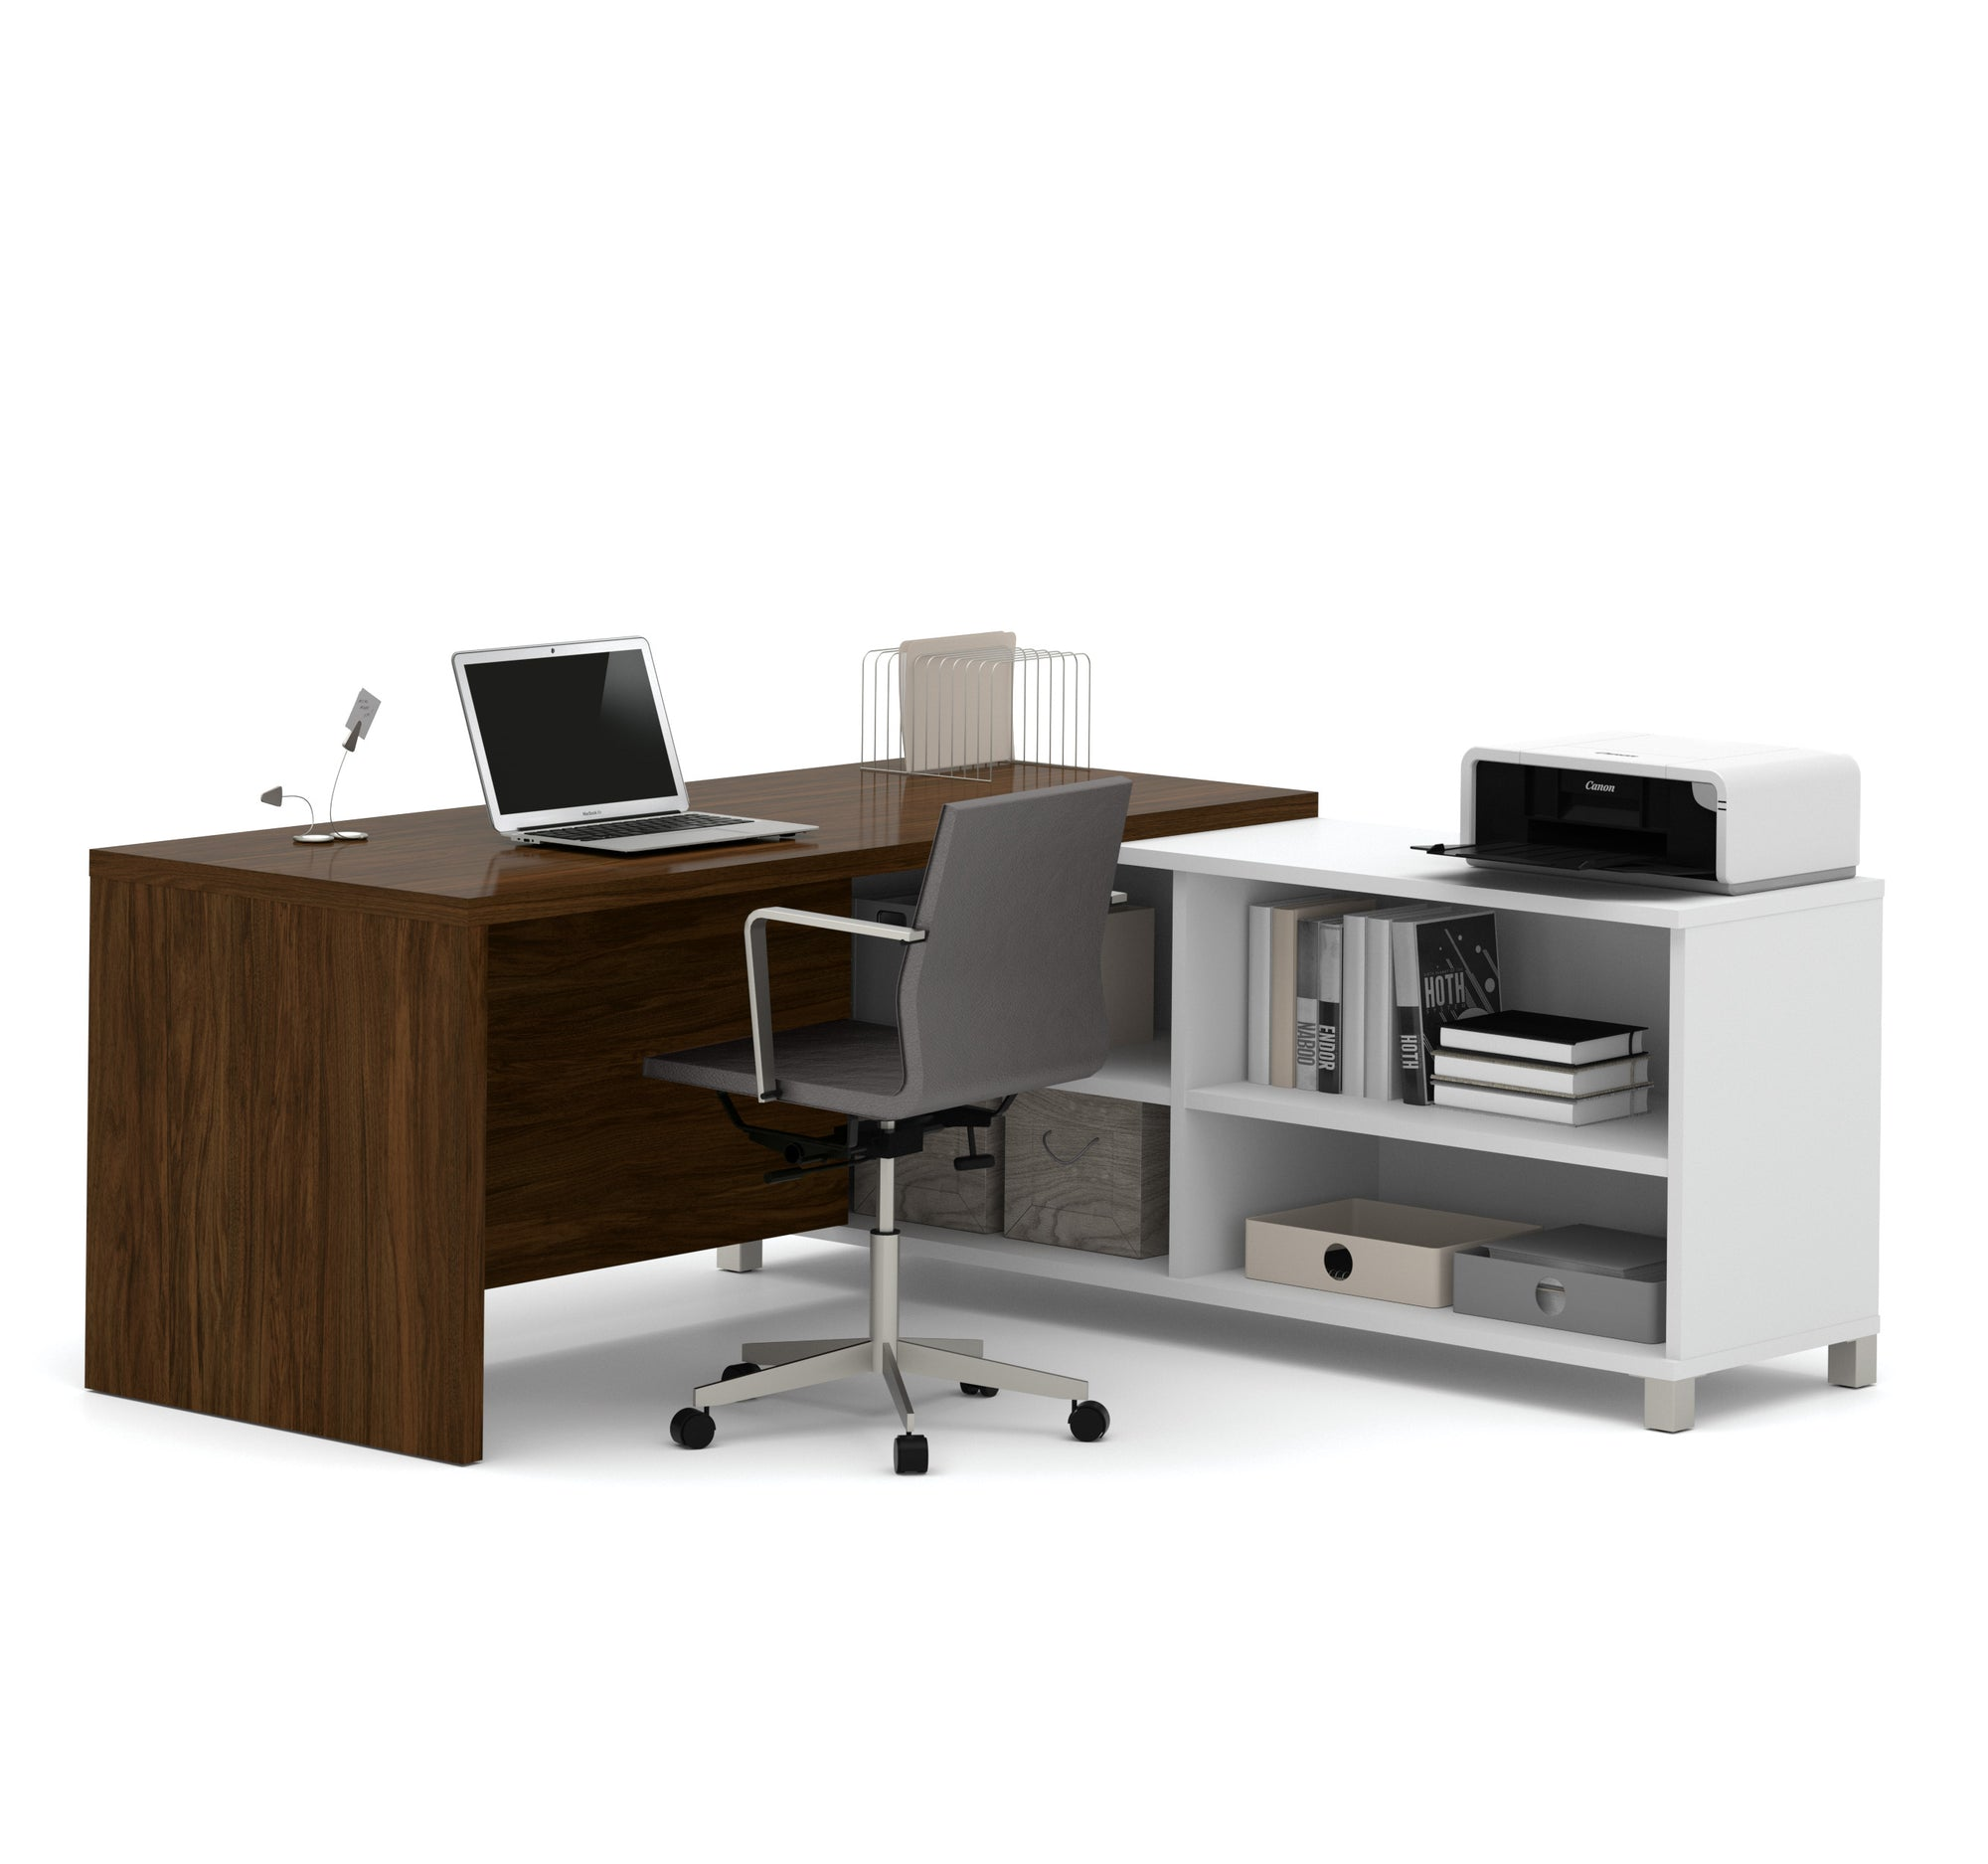 Modern L-Shaped Office Desk in Oak Barrel and White with Integrated Shelves